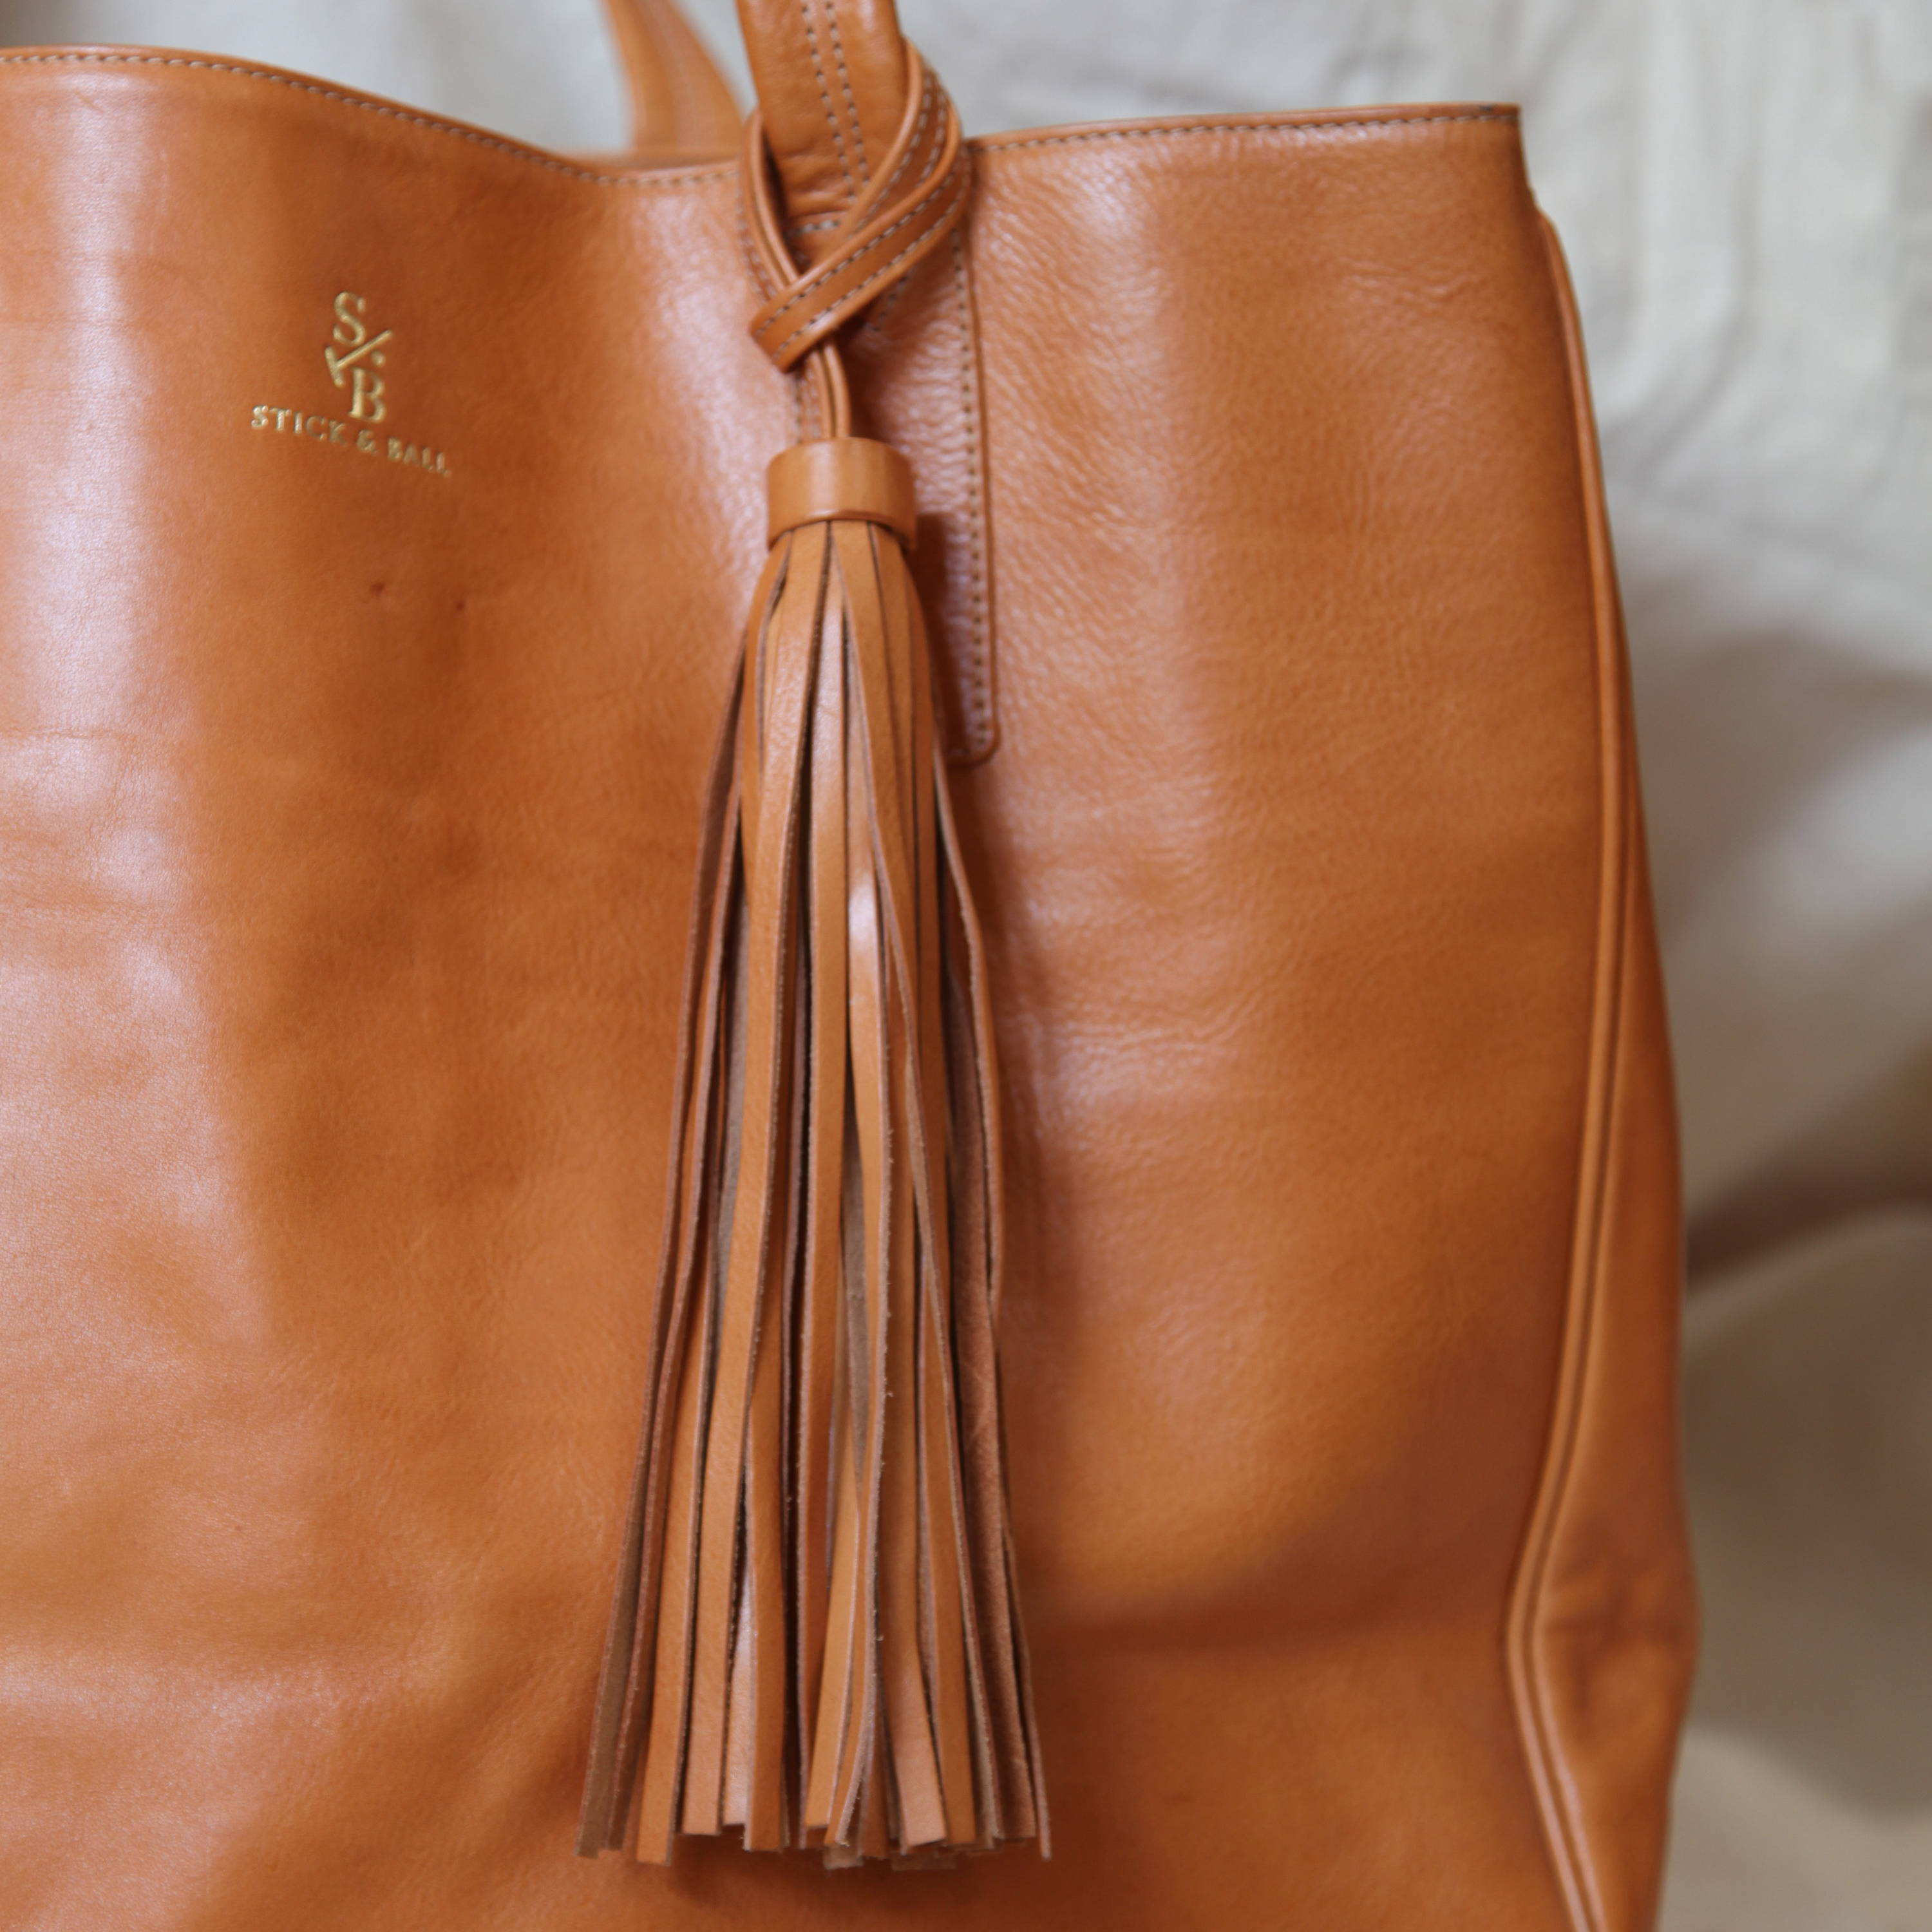 Stick & Ball vegetable-tanned Italian leather Wellington Weekender tote bag in tan